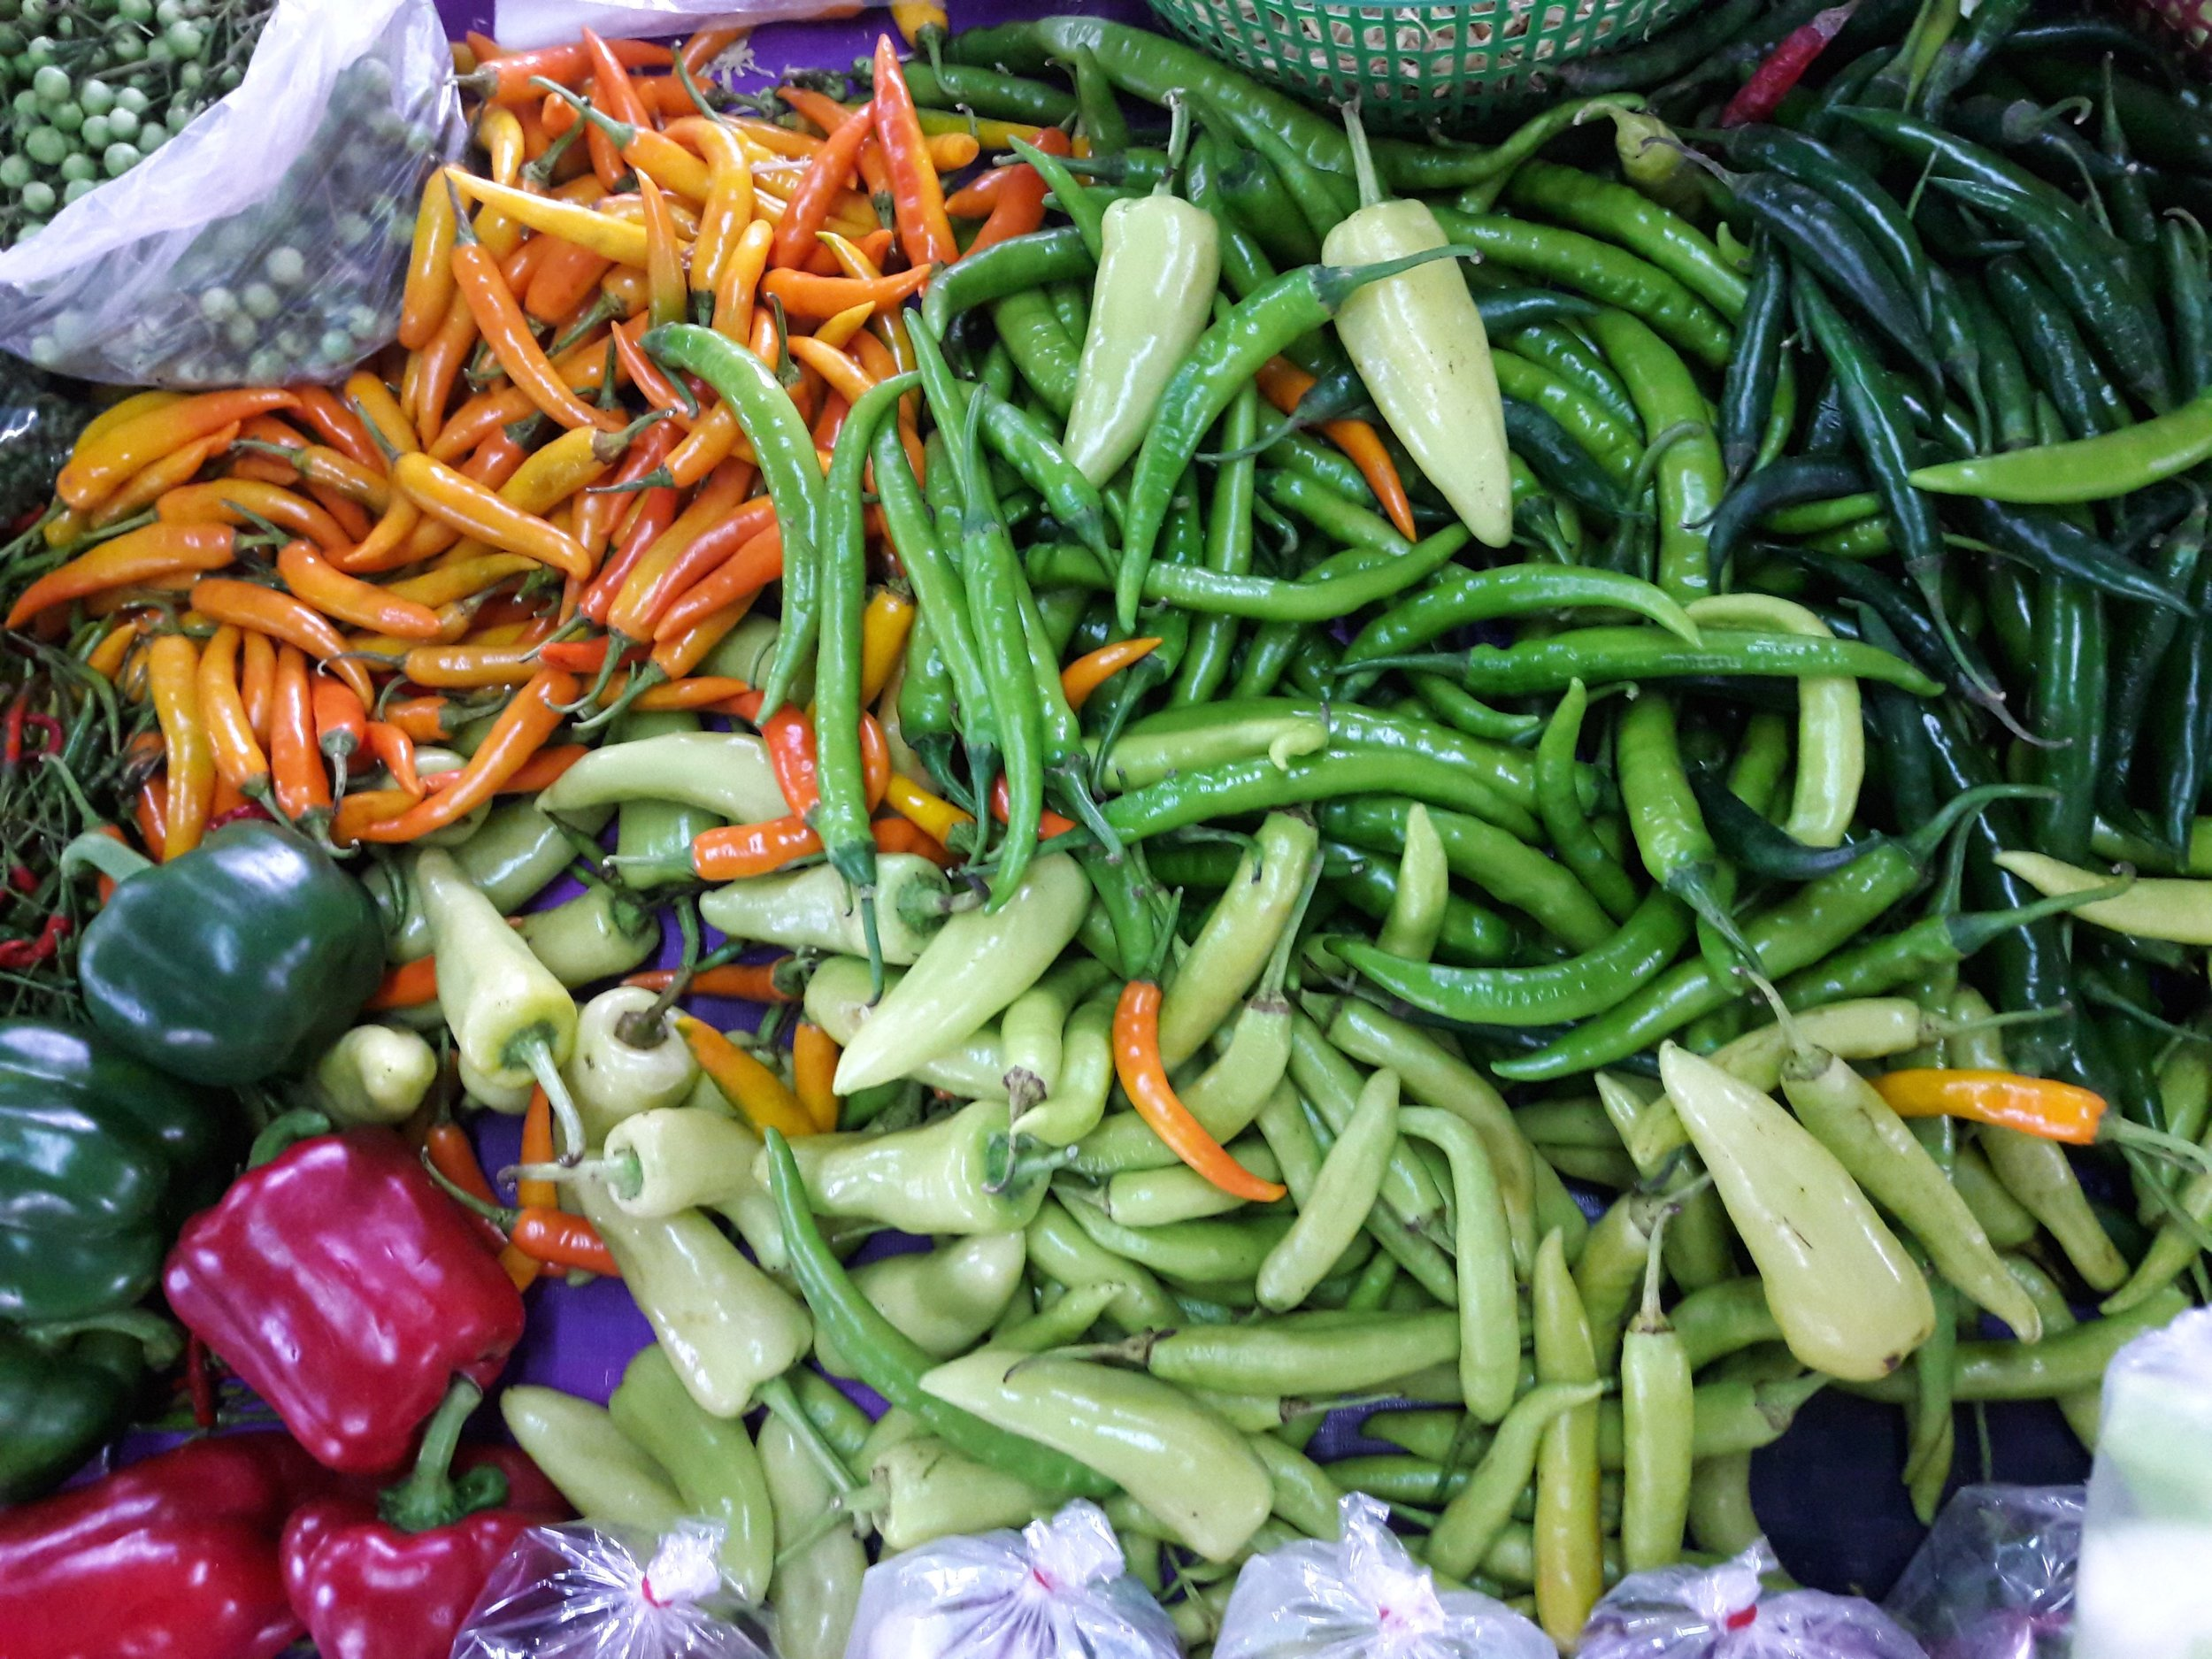 We call our food Rustic - it's healthy, easy, colorful and quick to cook.